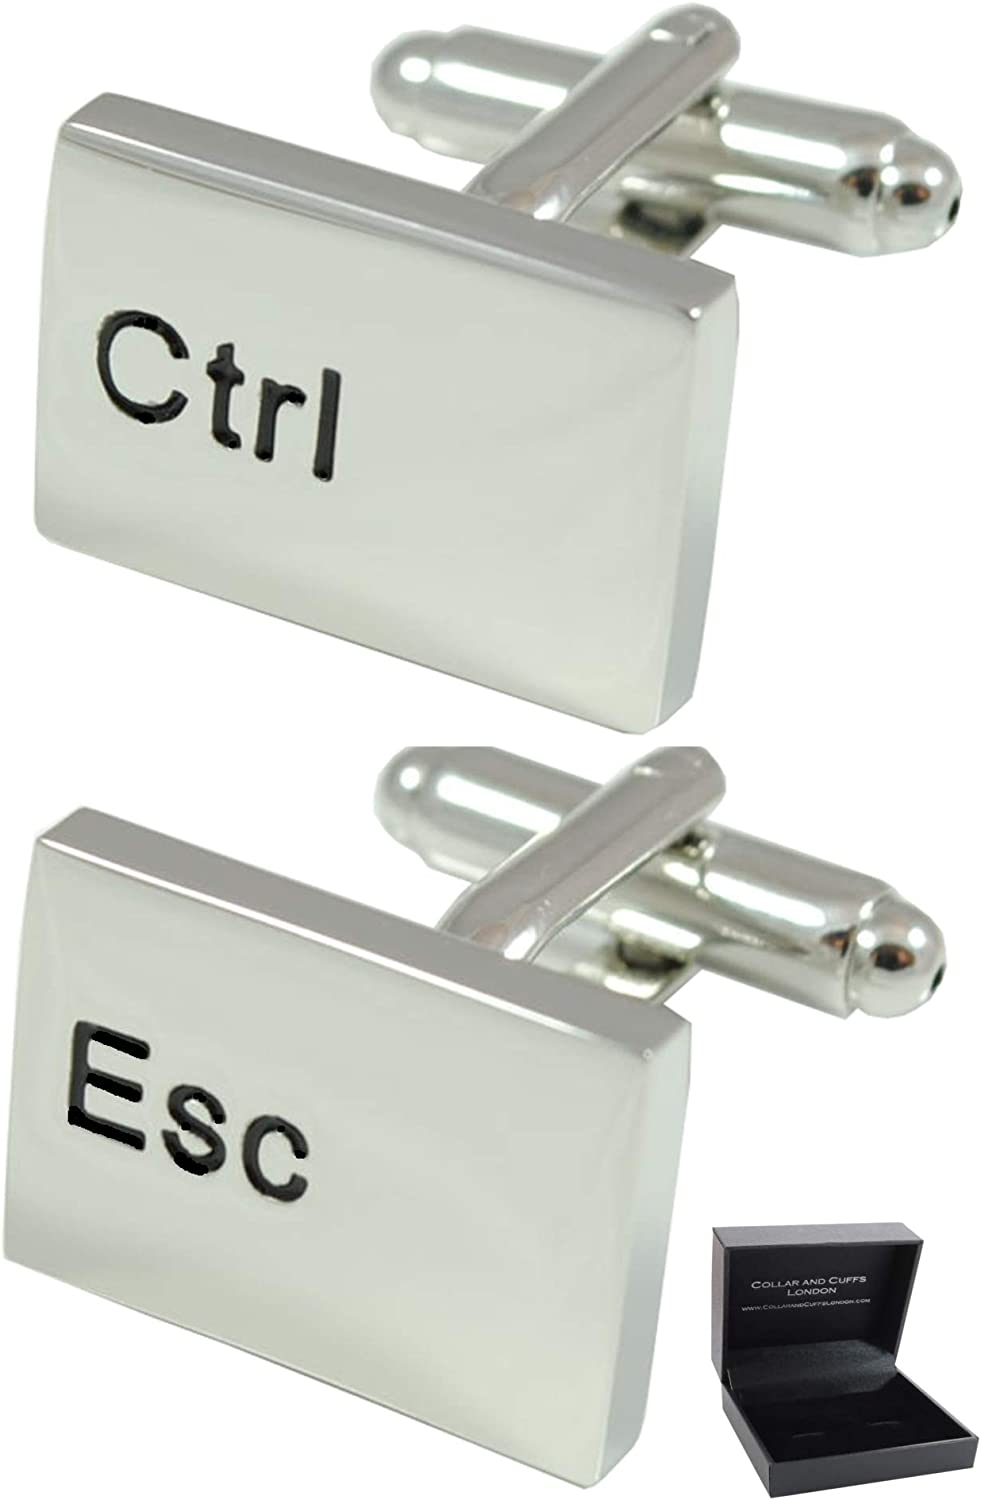 COLLAR AND CUFFS LONDON - Premium Cufflinks with Gift Box - Ctrl Esc Computer Keyboard - Solid Brass - Rhodium Plated - IT PC Key Rectangle Oblong Modern - Silver Color